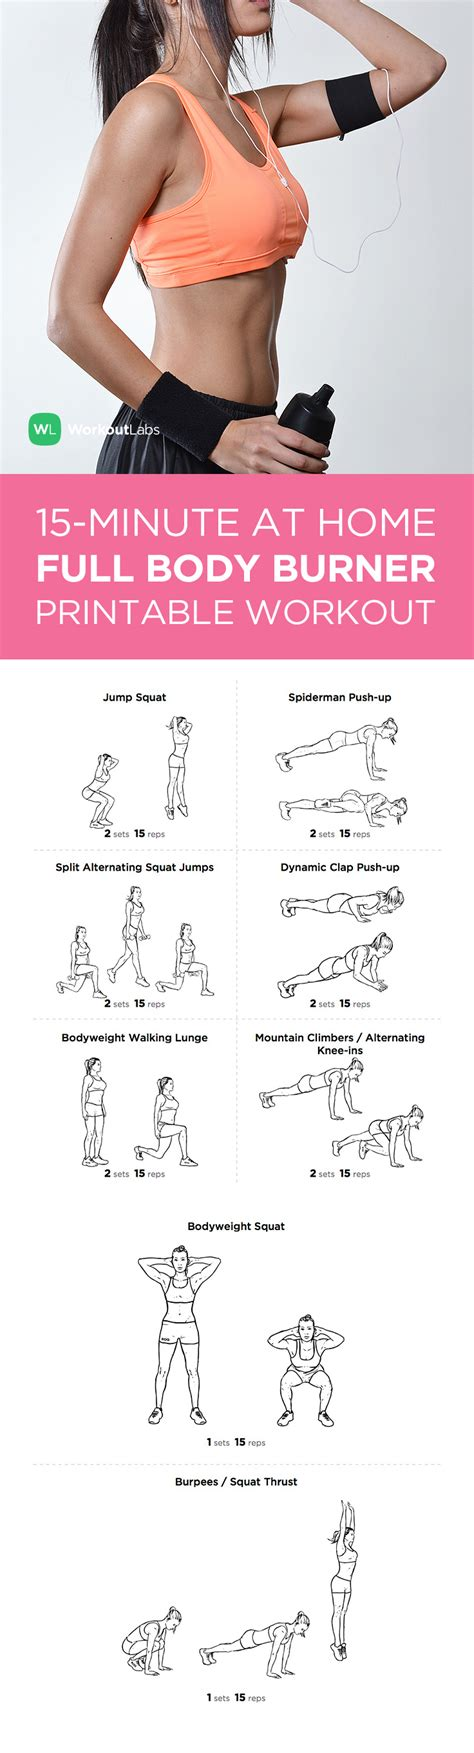 work out plans for women at home 15 minute full body burner at home workout for men women